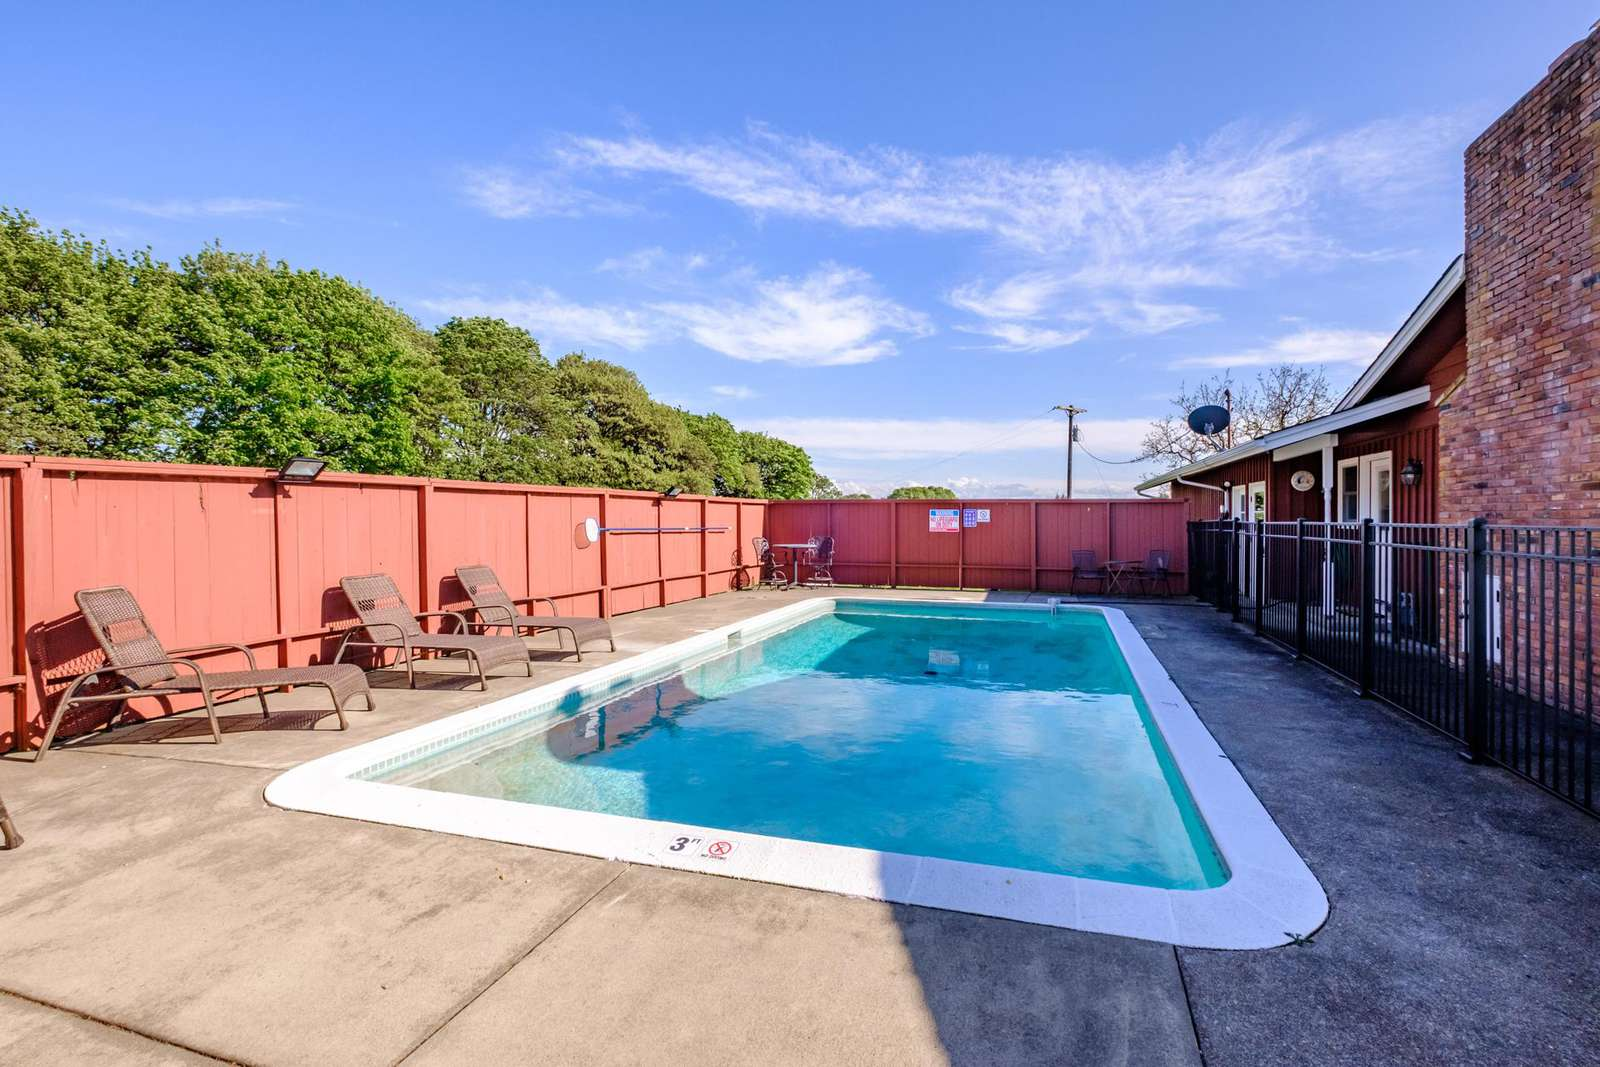 Pool with a surround safety gate.